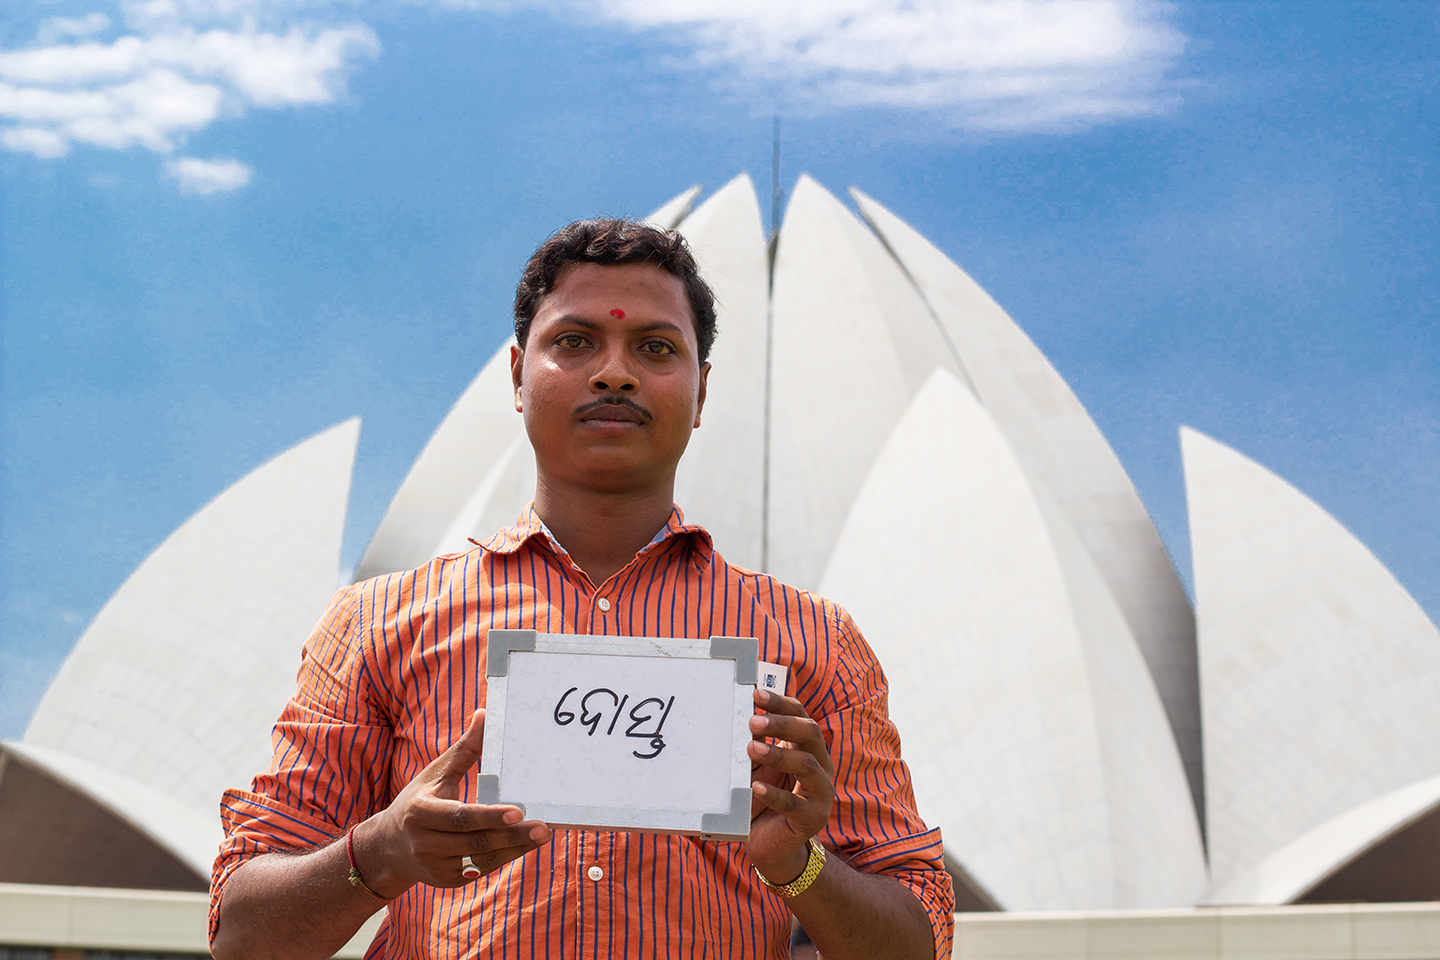 Aviram from Orissa visited the Lotus Temple on his trip to Delhi.